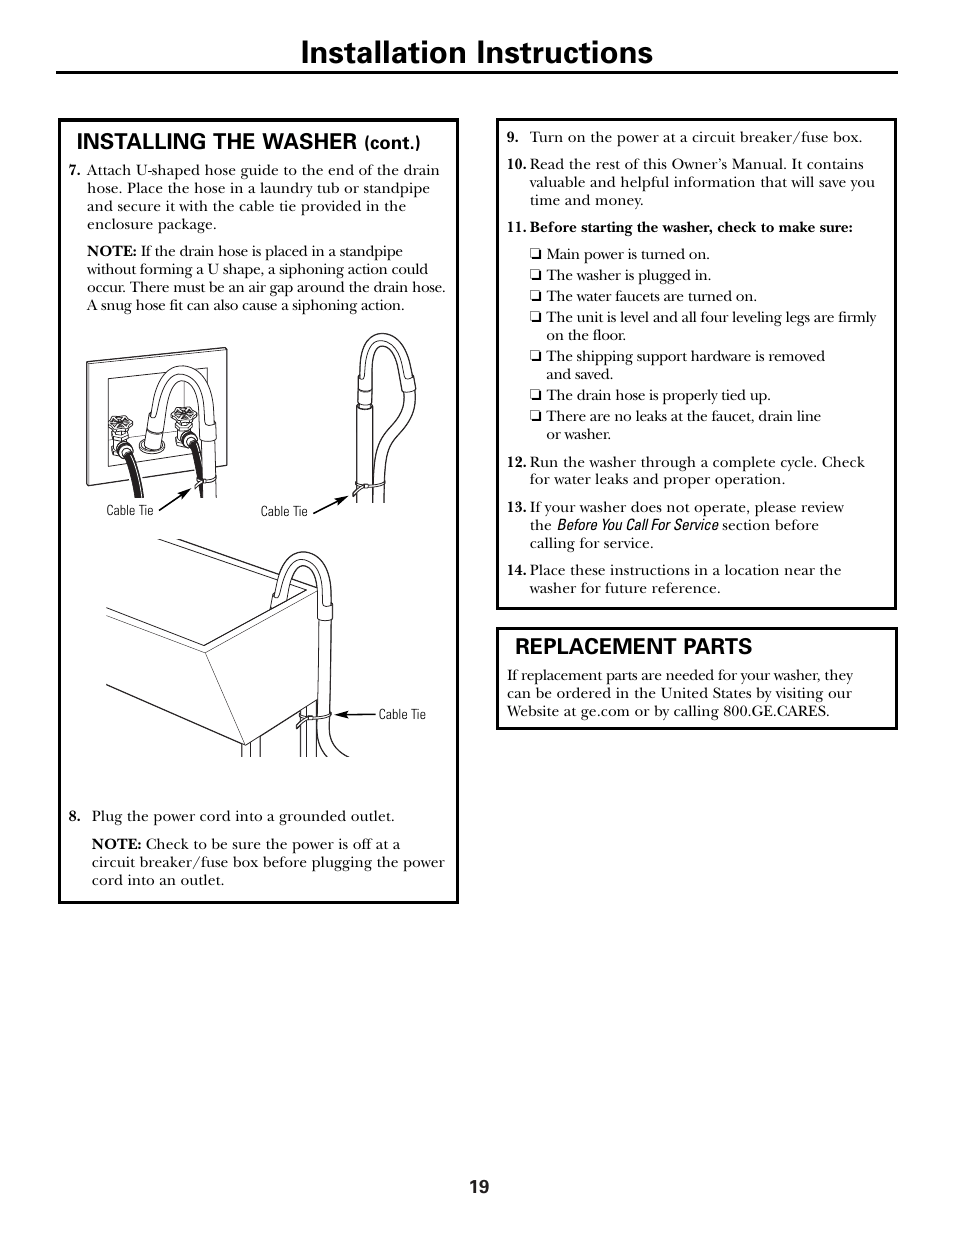 medium resolution of replacement parts installation instructions installing the washer ge ghdvh670 user manual page 19 76